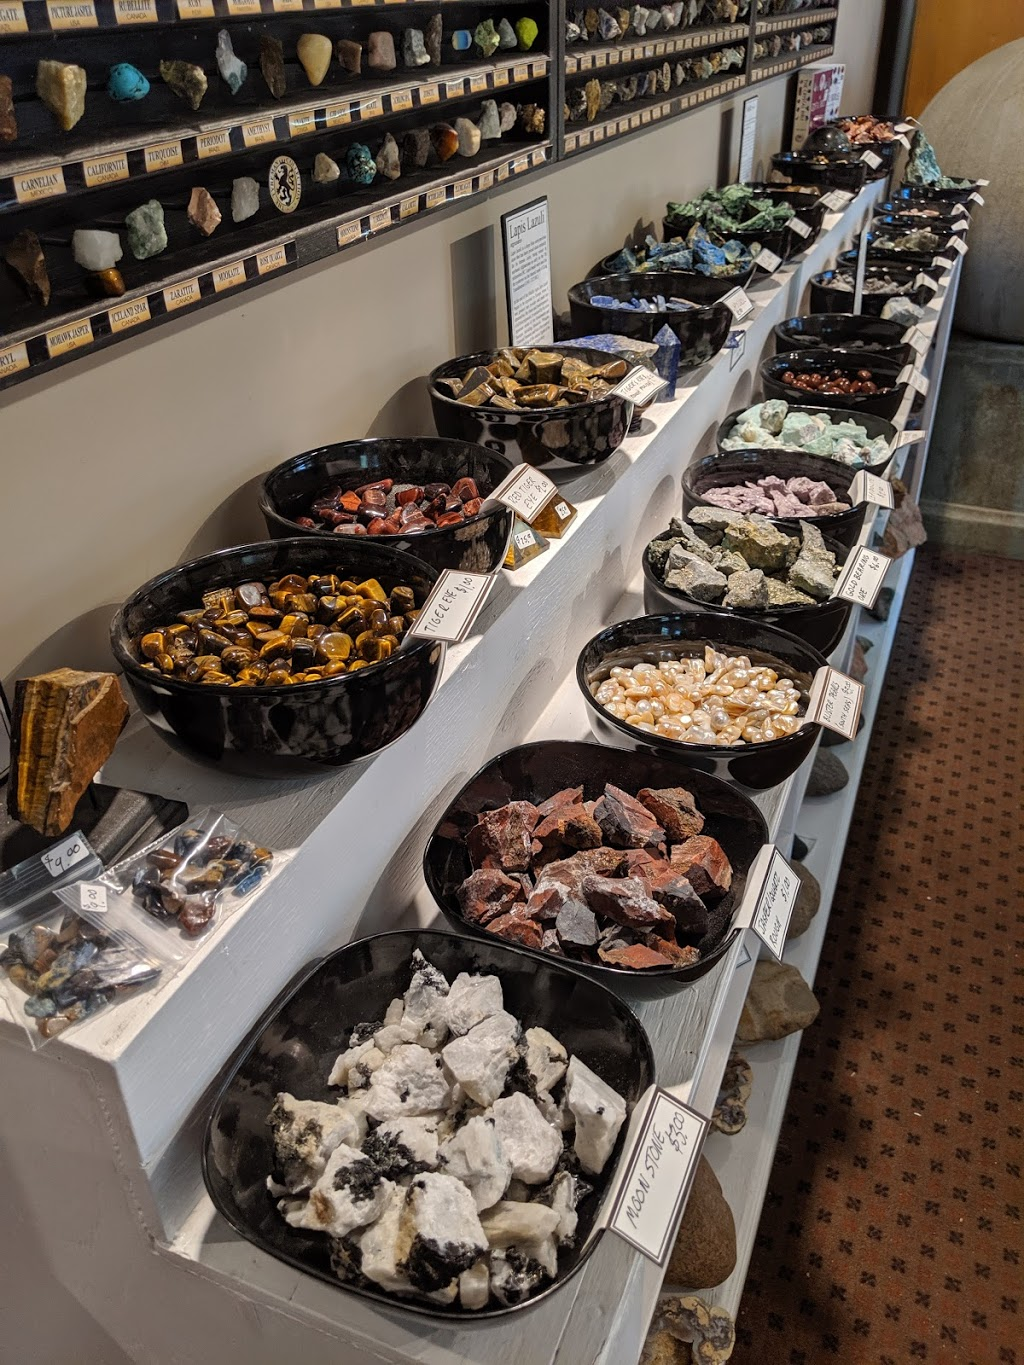 The Sesula Mineral & Gem Museum | museum | 333 Main St, Radisson, SK S0K 3L0, Canada | 6393175669 OR +1 639-317-5669